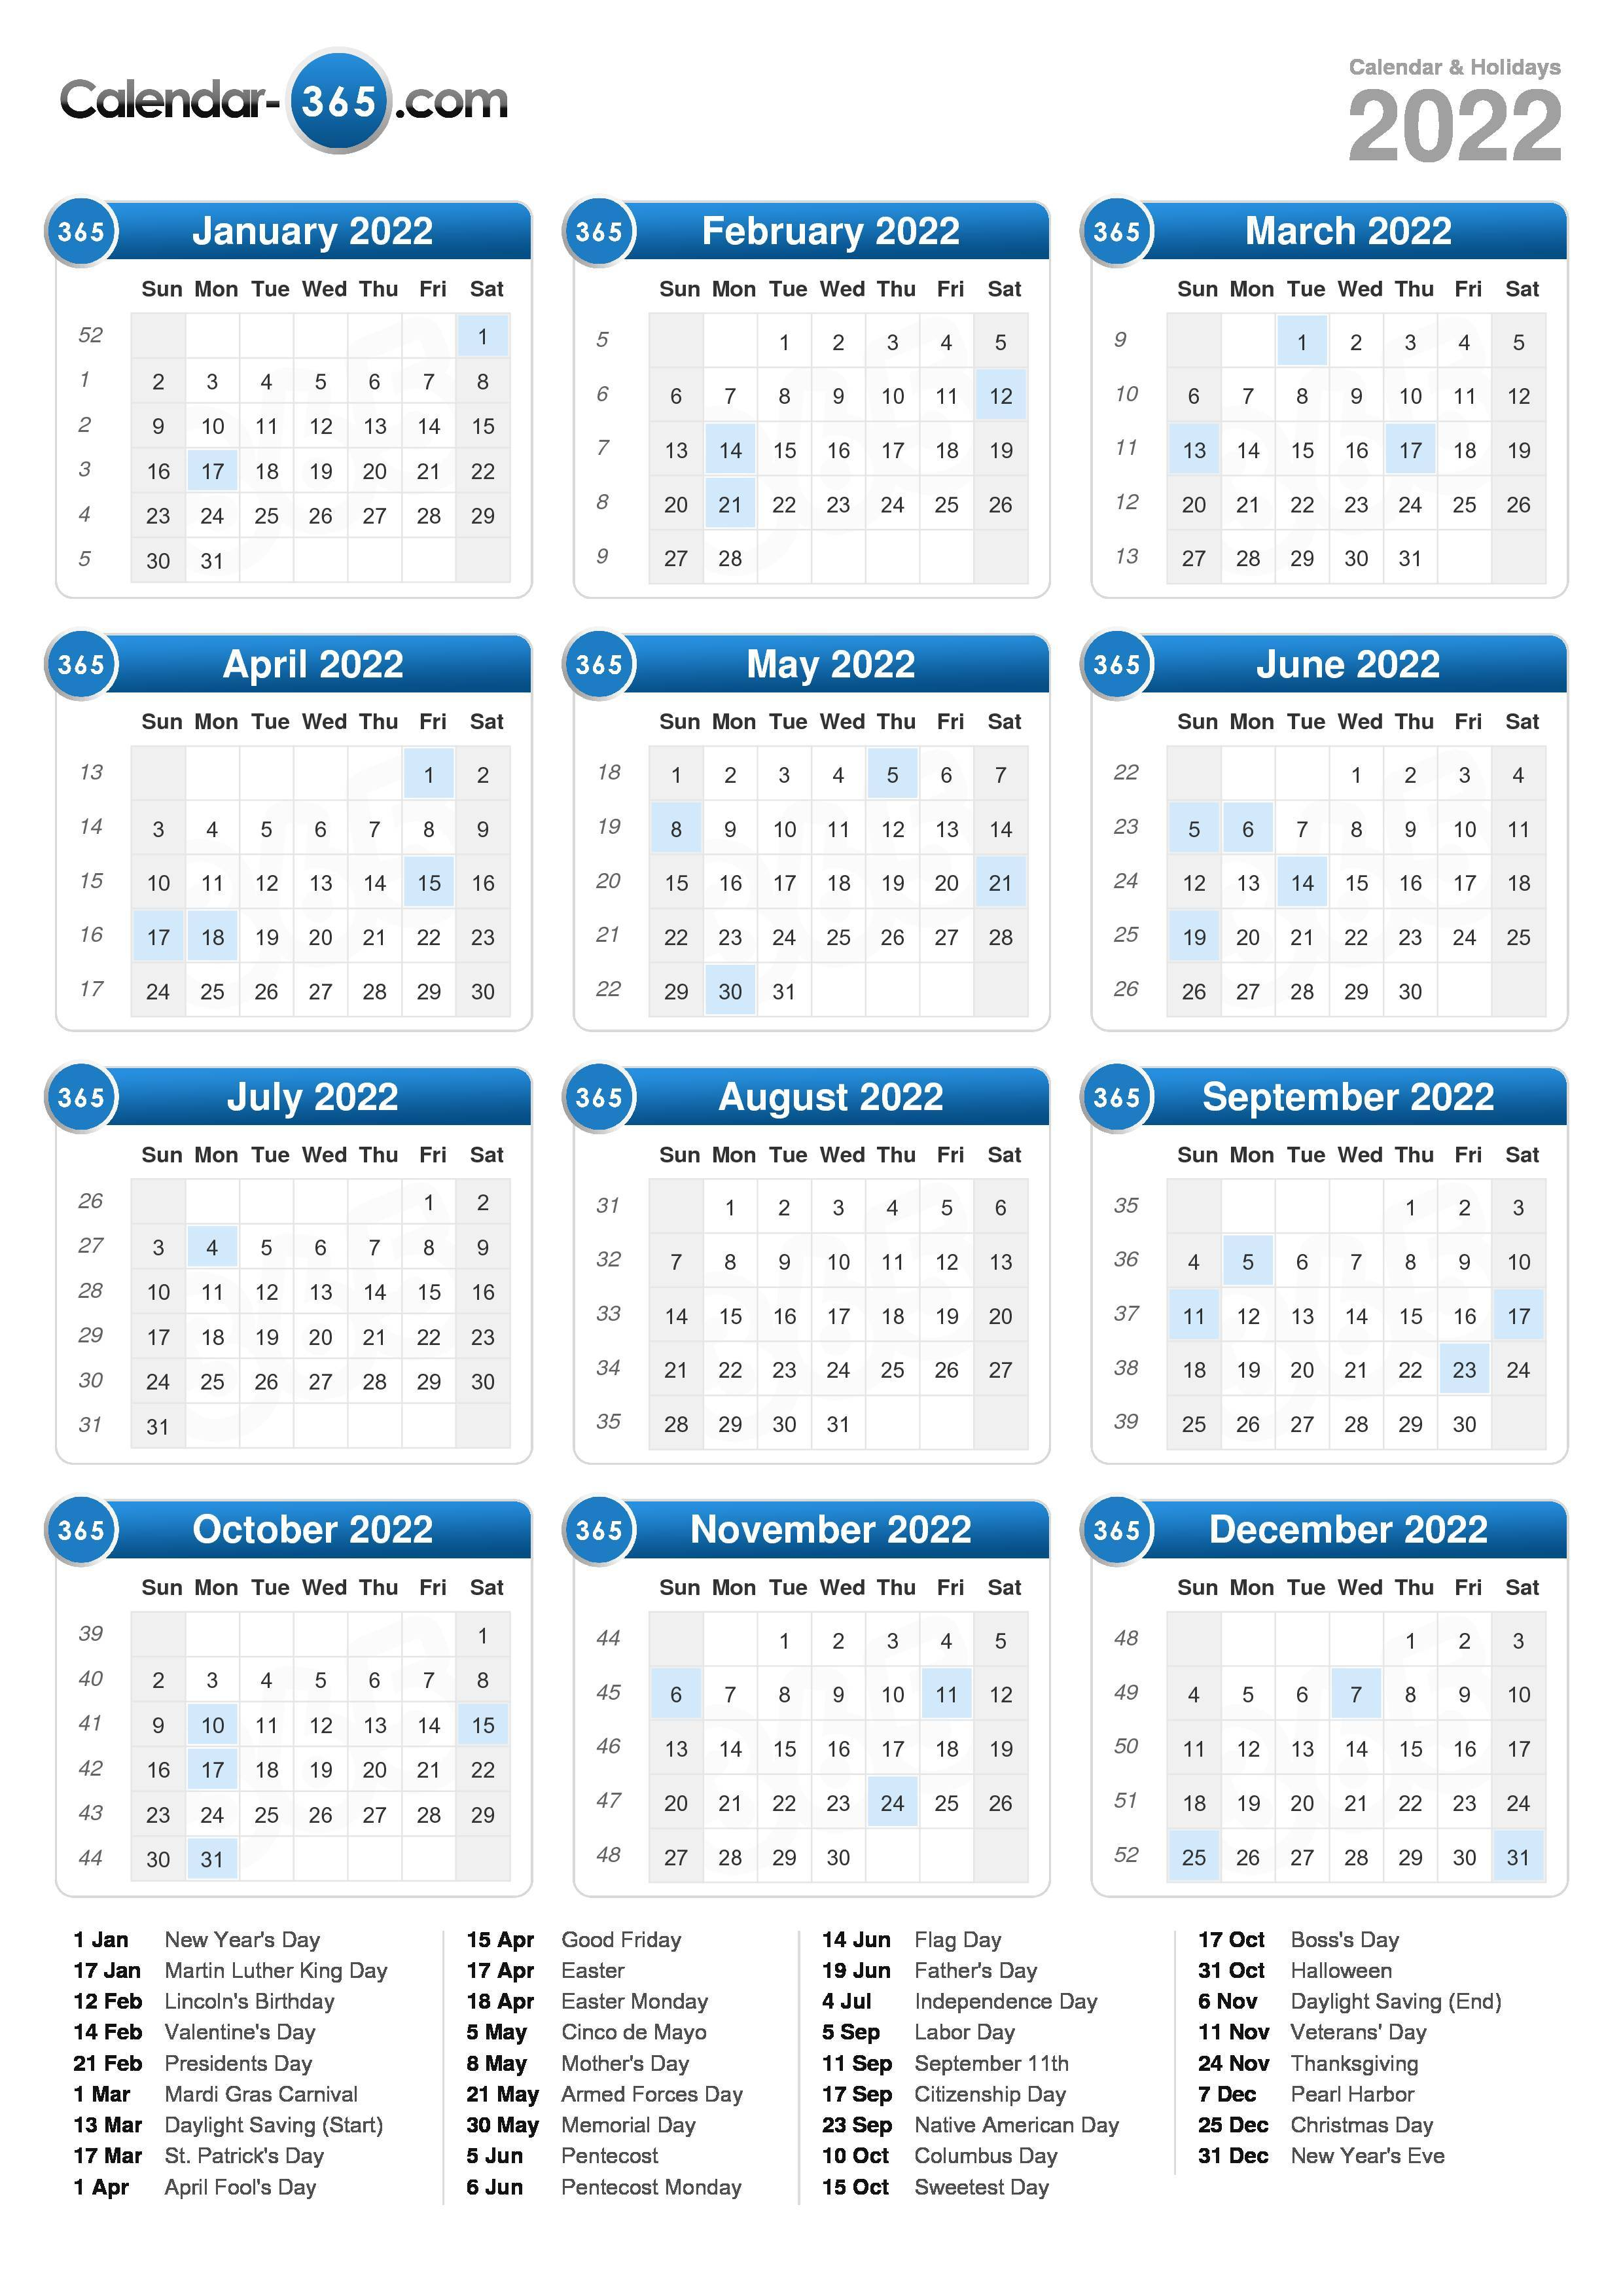 graphic regarding 2022 Calendar Printable named 2022 Calendar